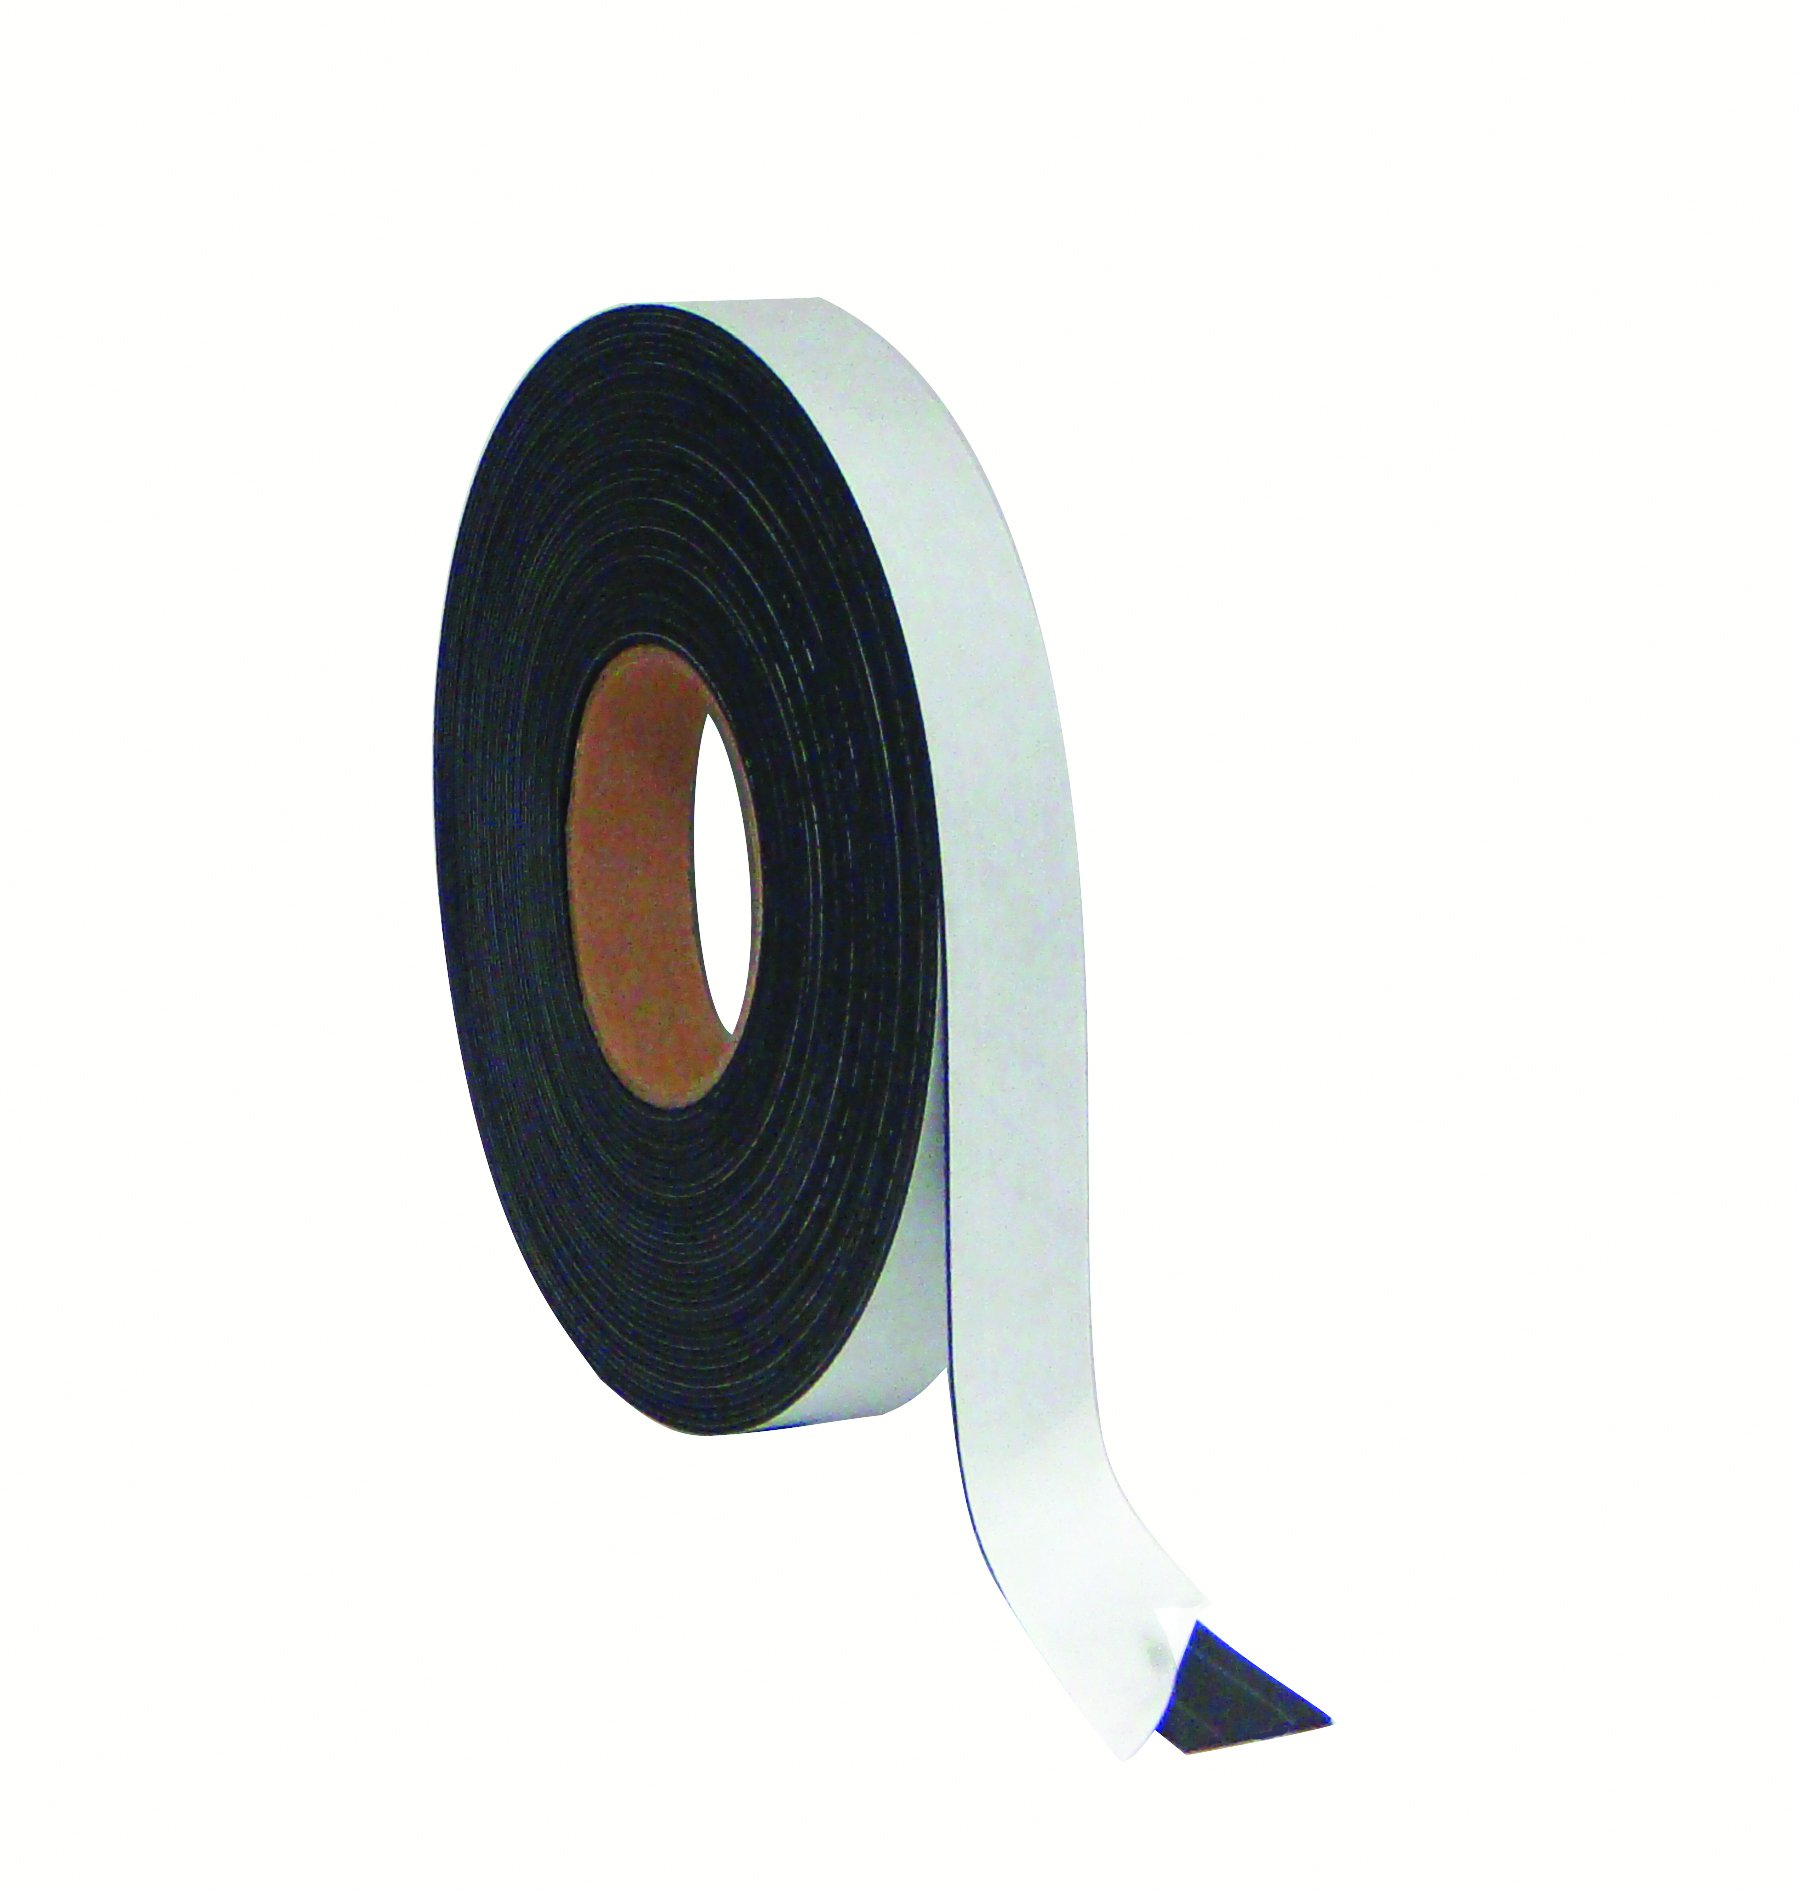 MasterVision Tape Roll Adhesive Magnetic, 1'' x 50', Black